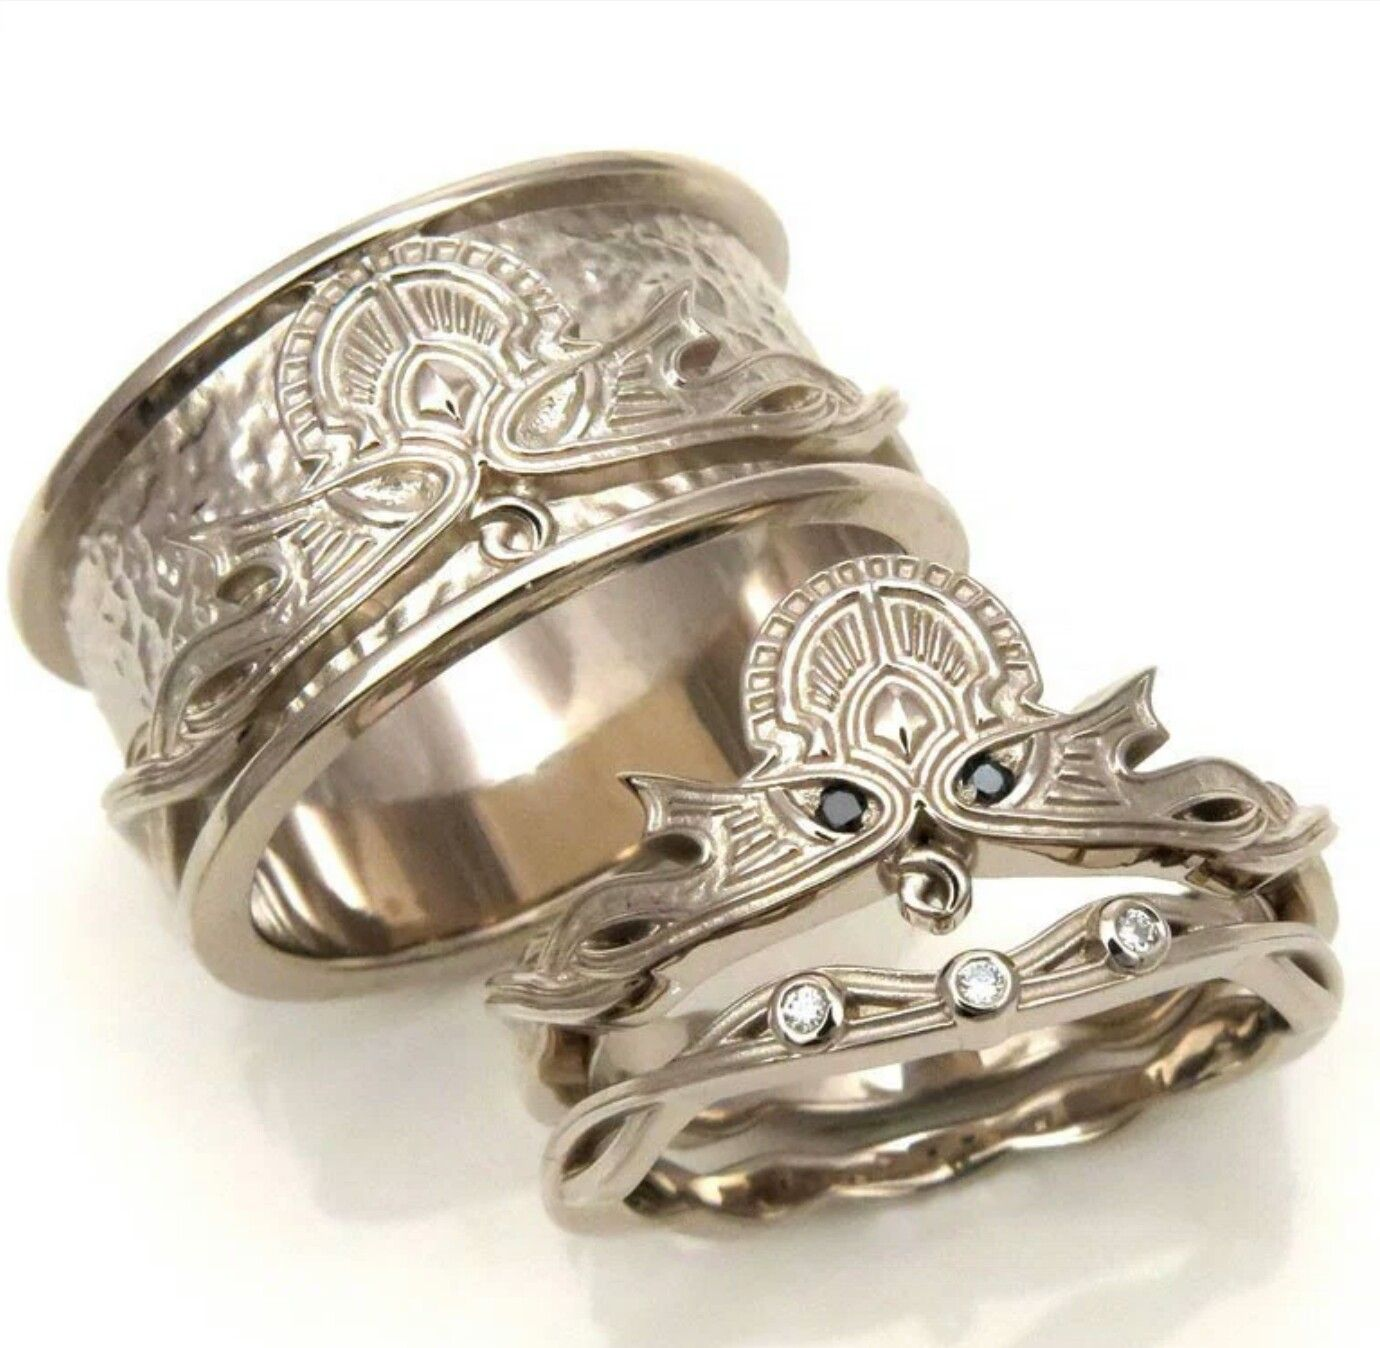 Pin by Myer Brown on wedding bands Viking wedding ring